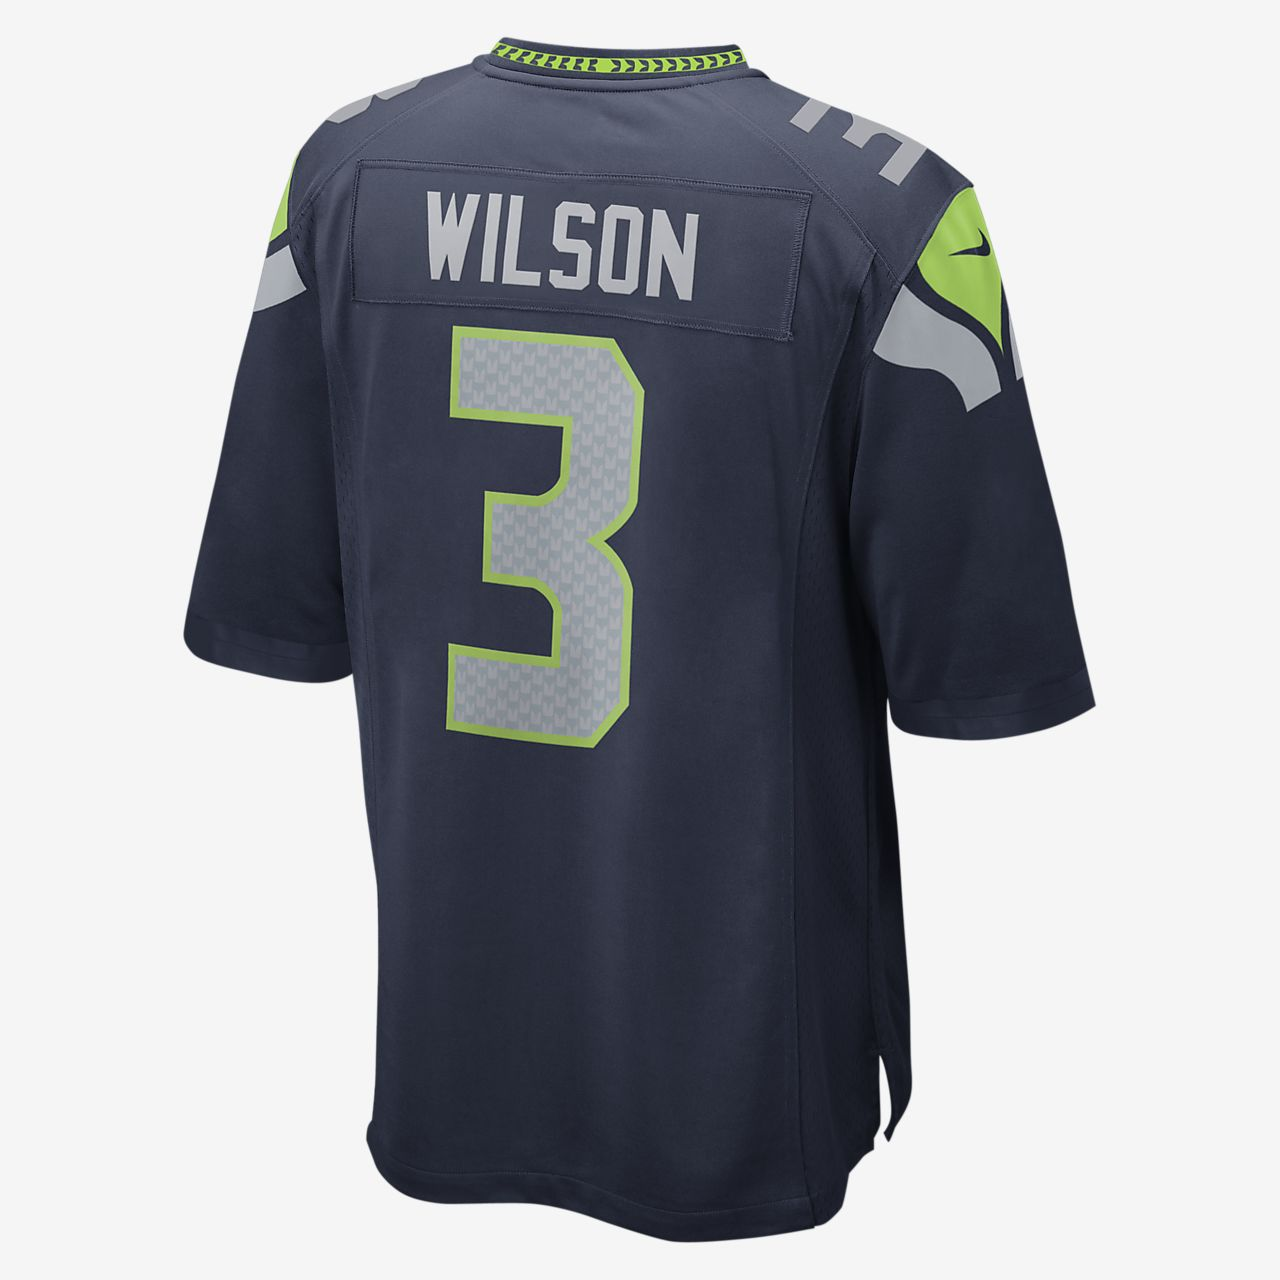 size 40 e5739 22e55 NFL Seattle Seahawks (Russell Wilson) Men's American Football Home Game  Jersey